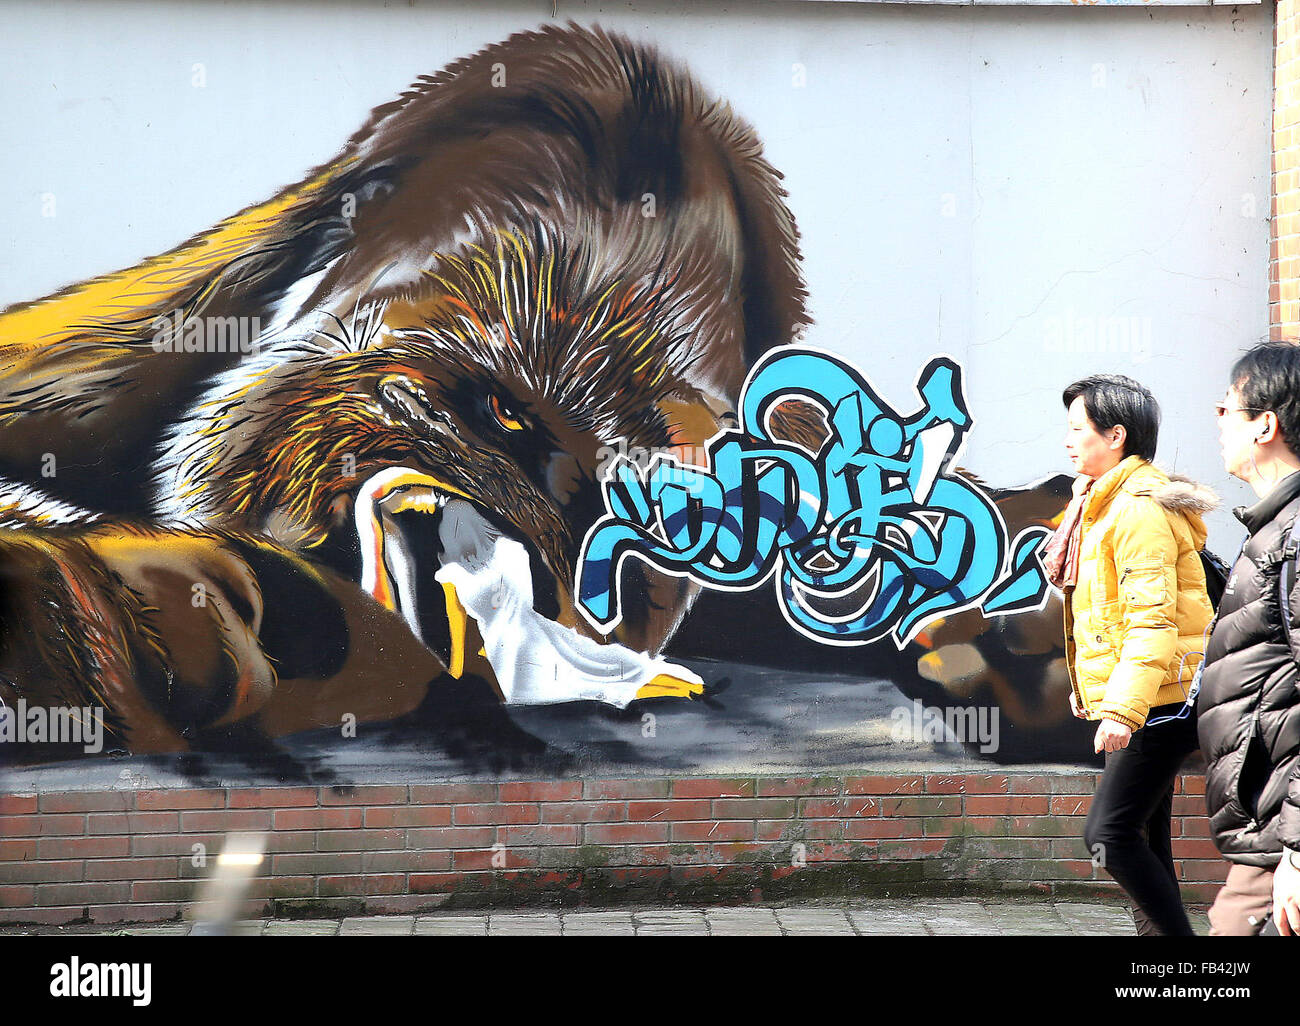 Local residents walk by a wall painted with graffiti works in shanghai east china jan 9 2015 chen fei xinhua alamy live news